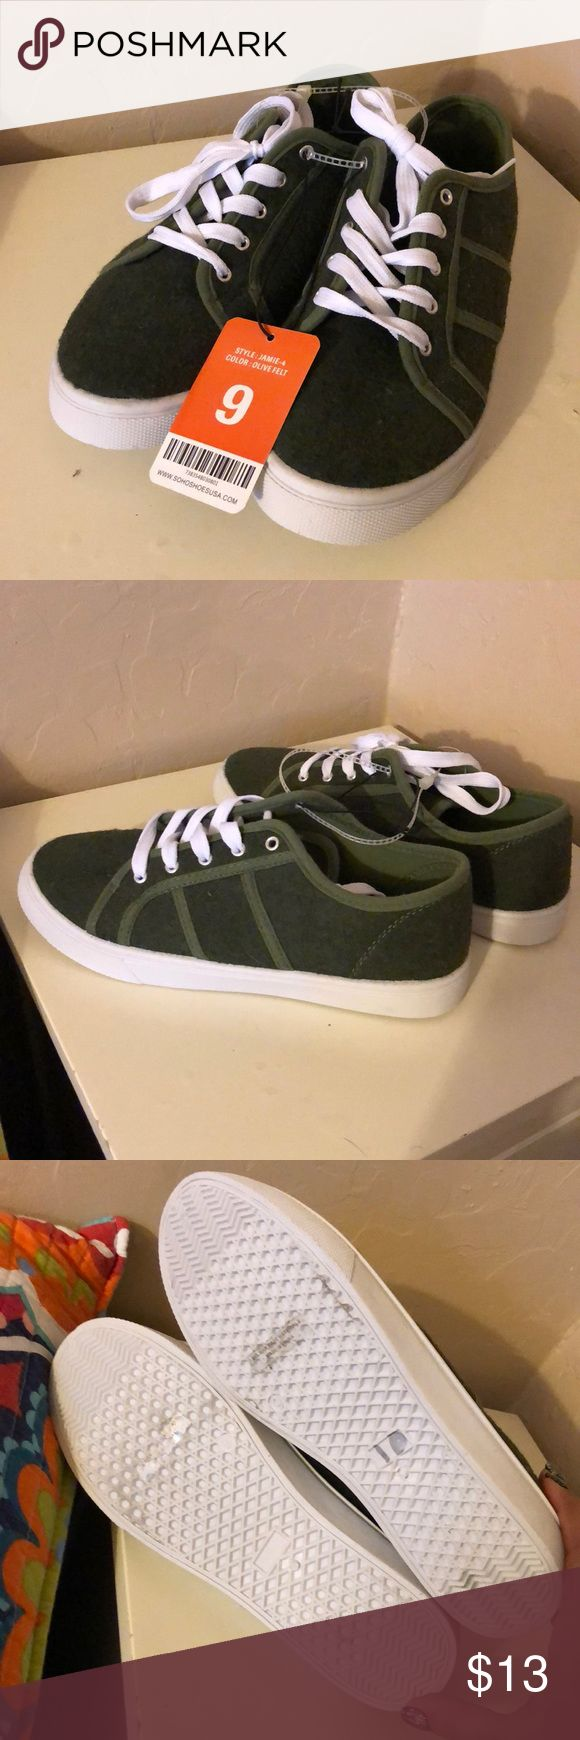 Felt tennis shoes Olive Green Felt Tennis Shoes by Soho.  New with tags size 9 tried on but never worn outside. Excellent condition!! Soho Shoes Sneakers